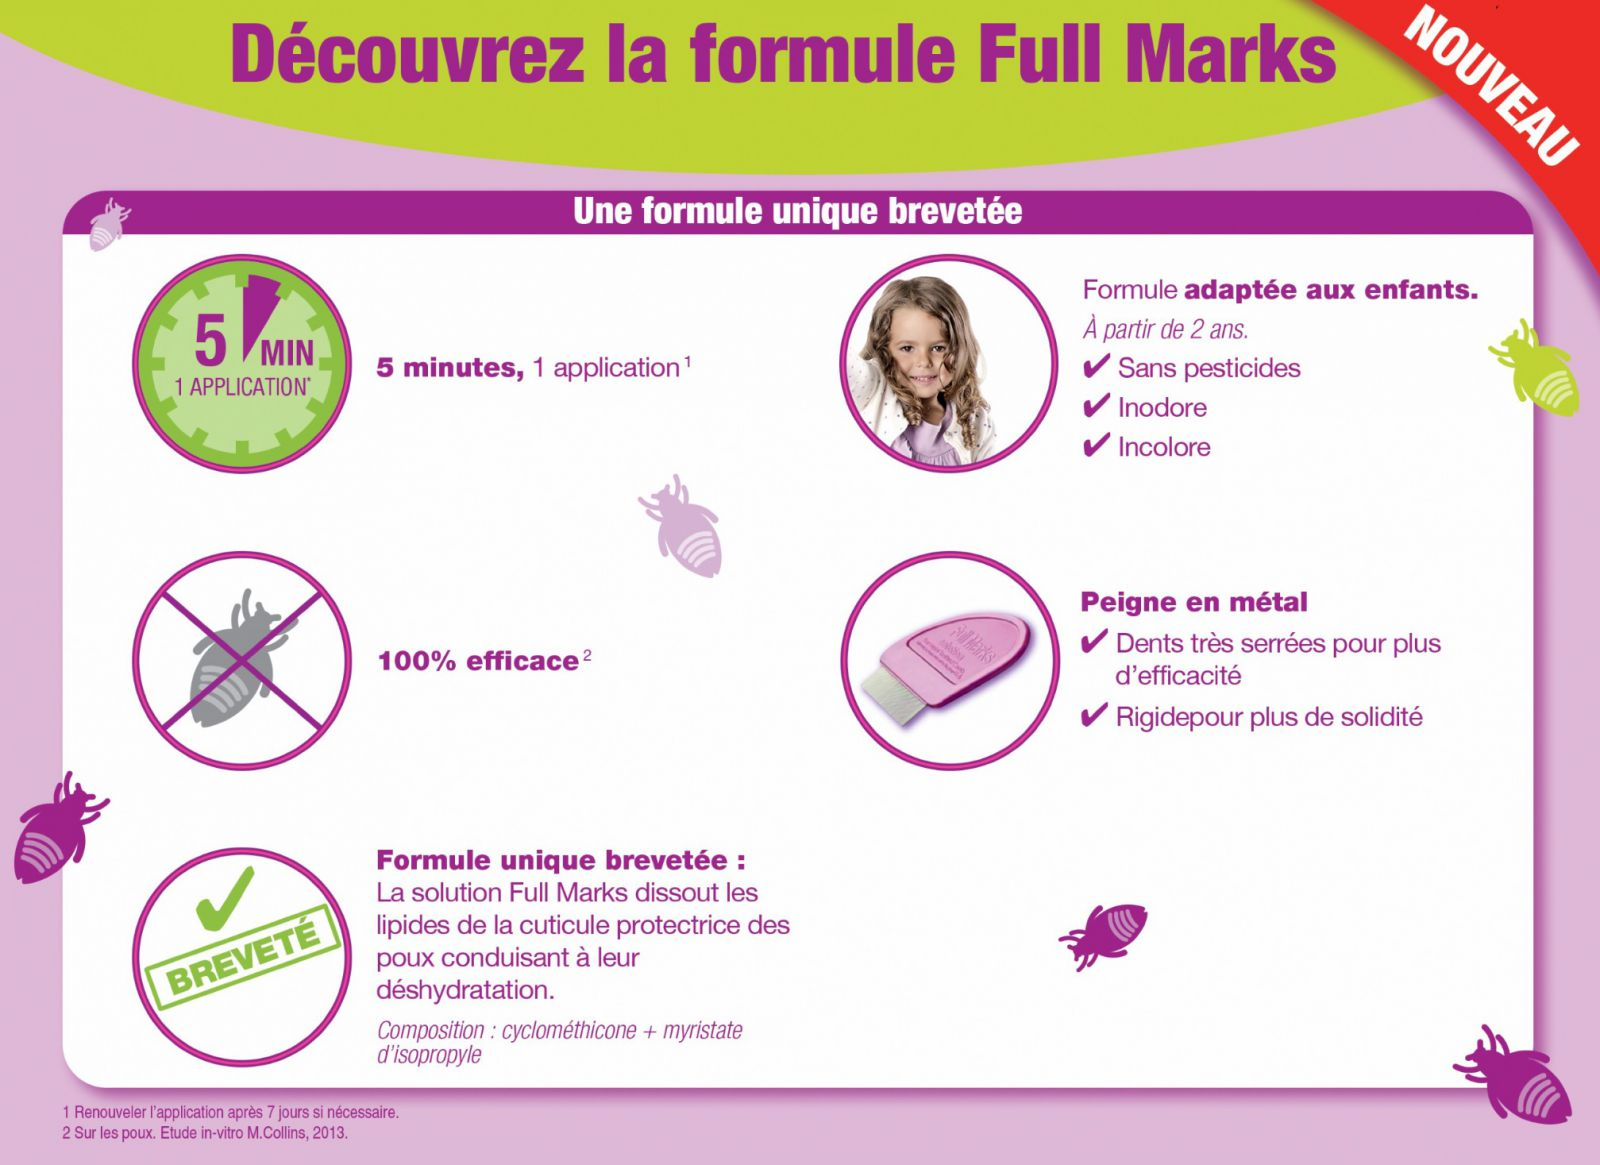 full marks descriptif